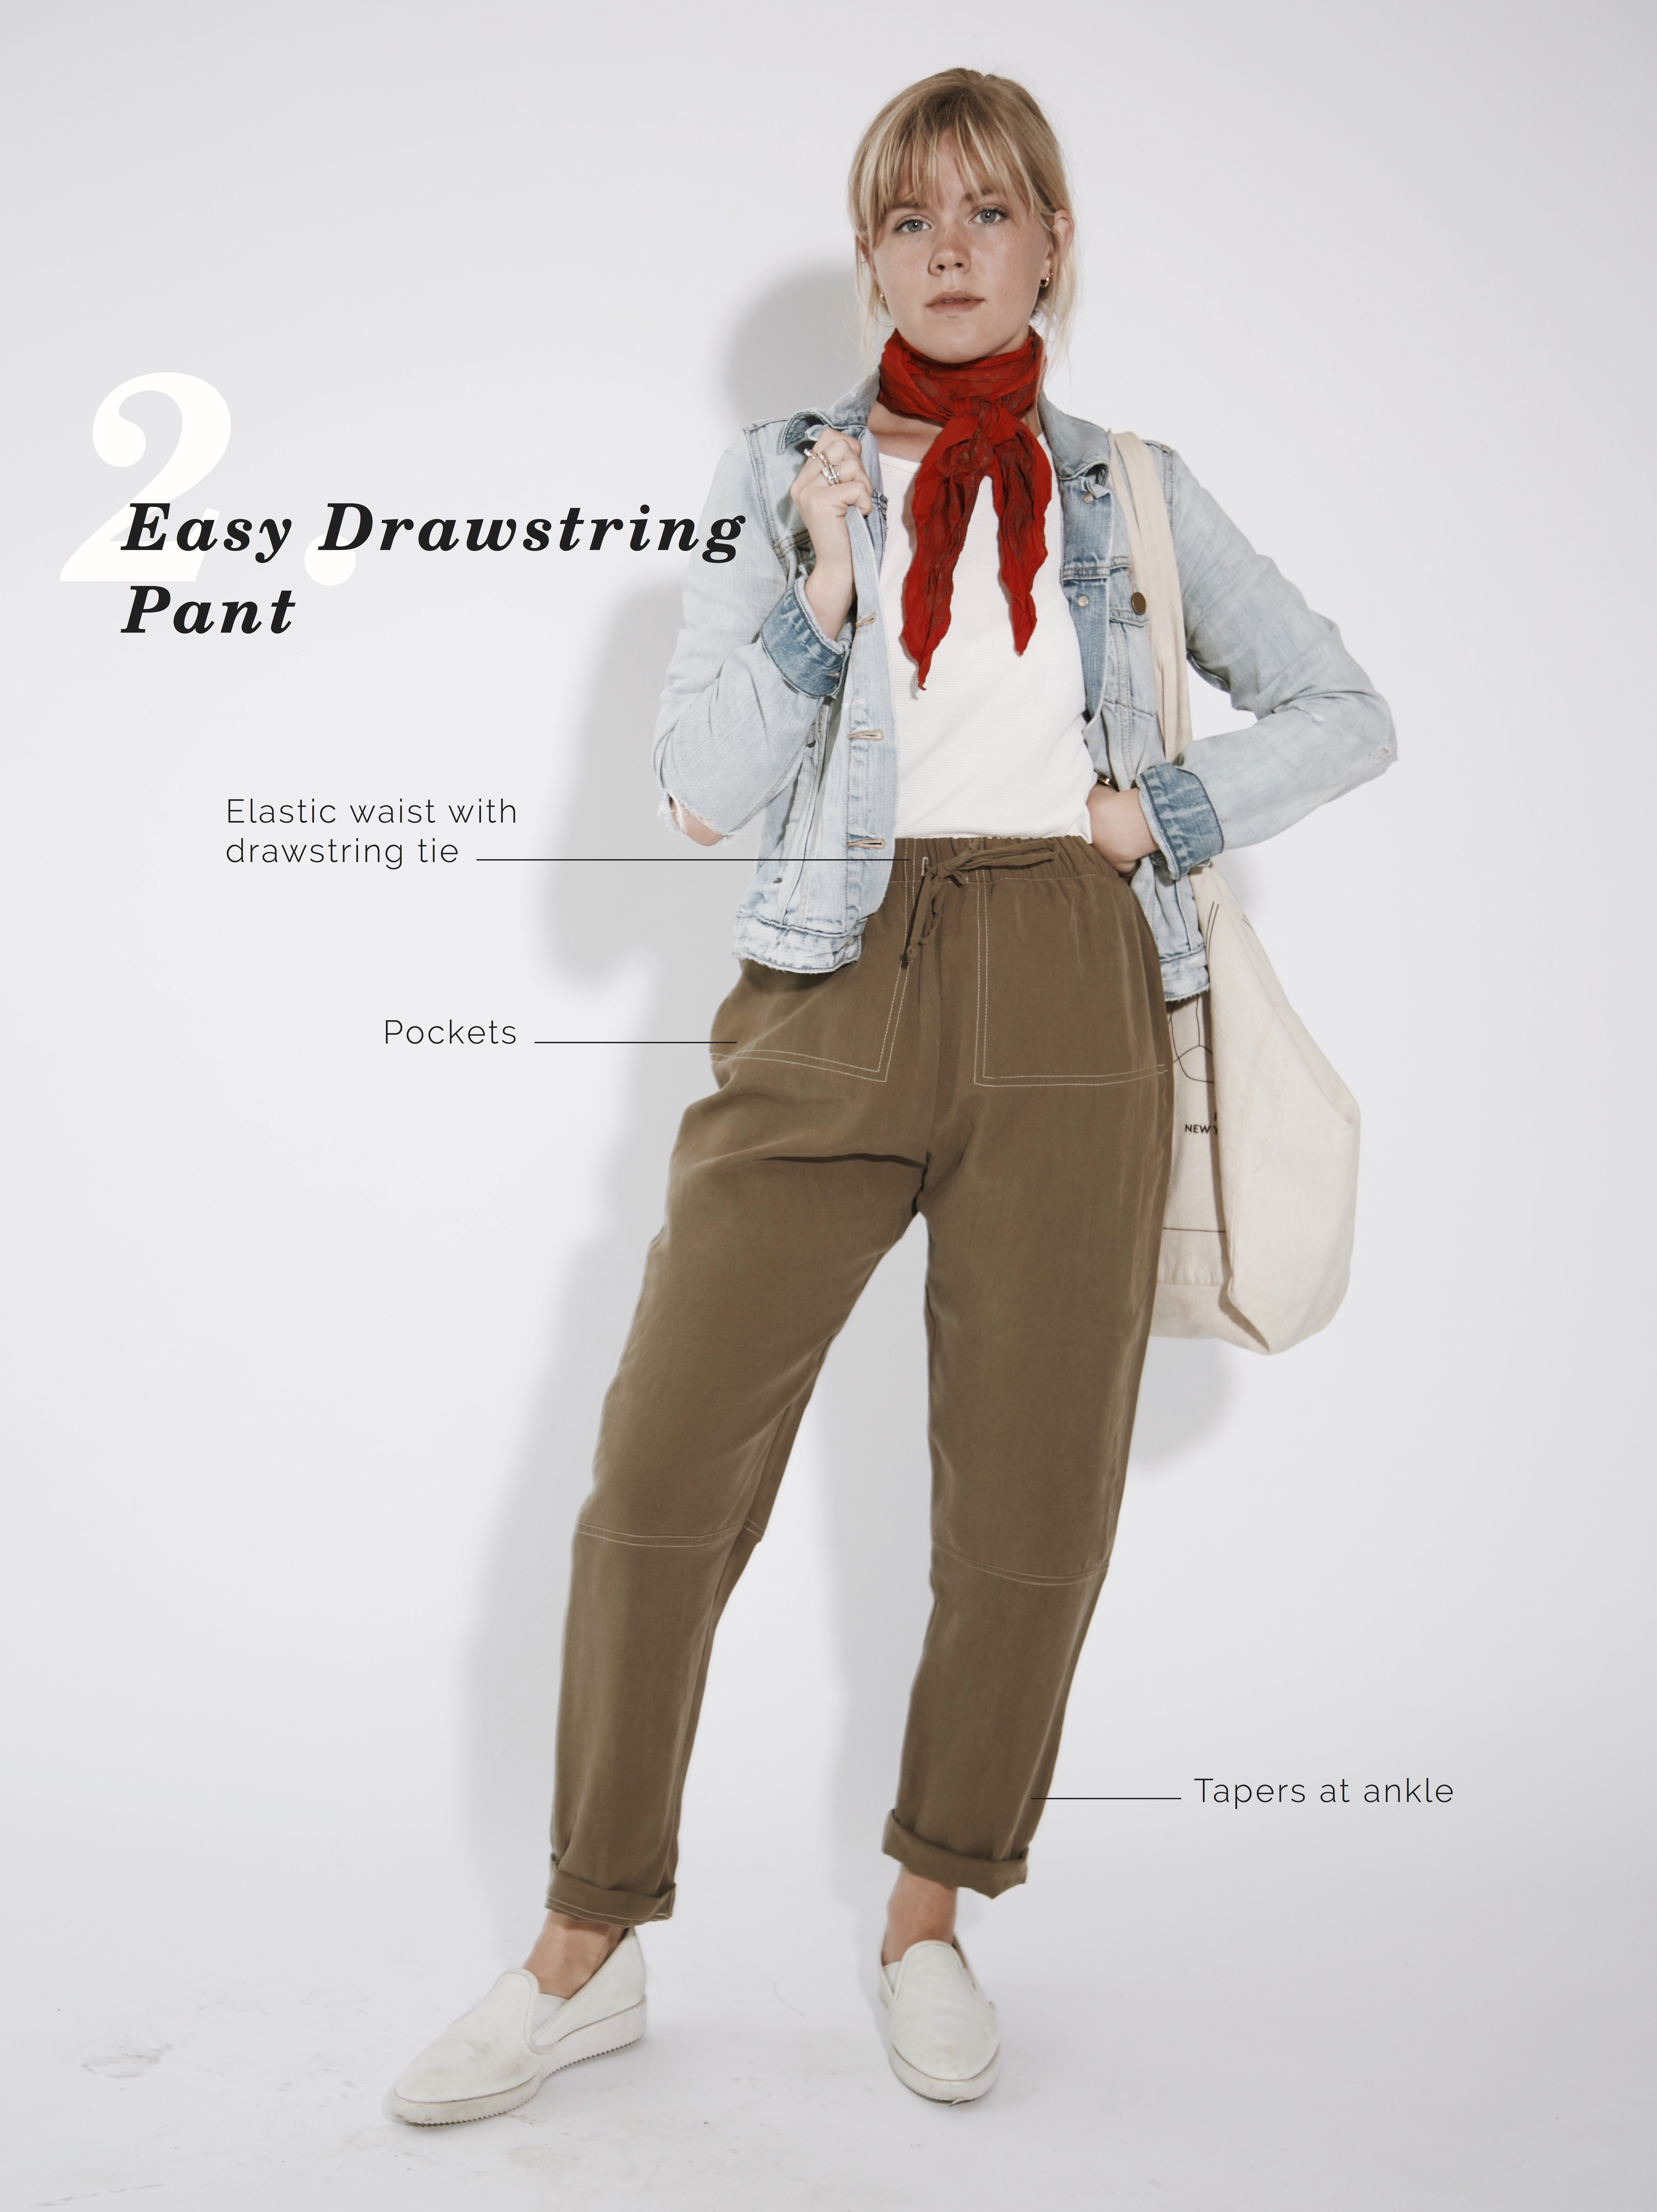 All About PANTS.